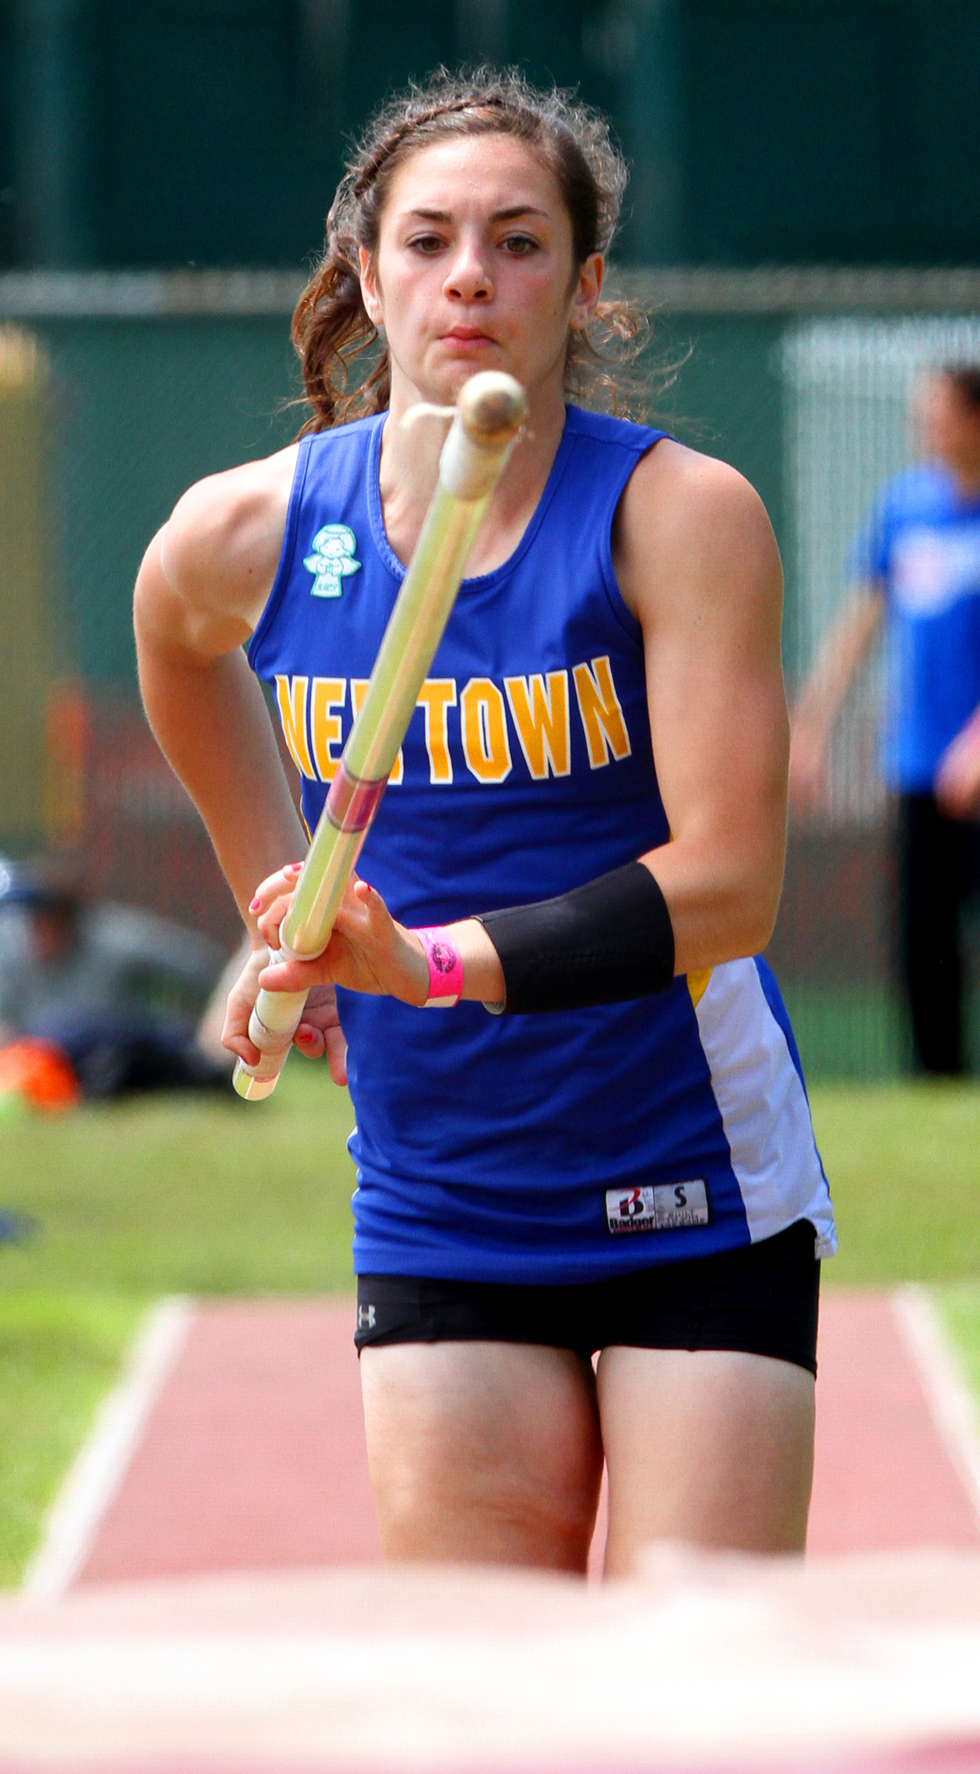 June 8, 2013: Newtown's Jenna Calandro prepares for take-off during the pole vault competition at the New England Track and Field Championships.Stan Godlewski/Special to the Courant